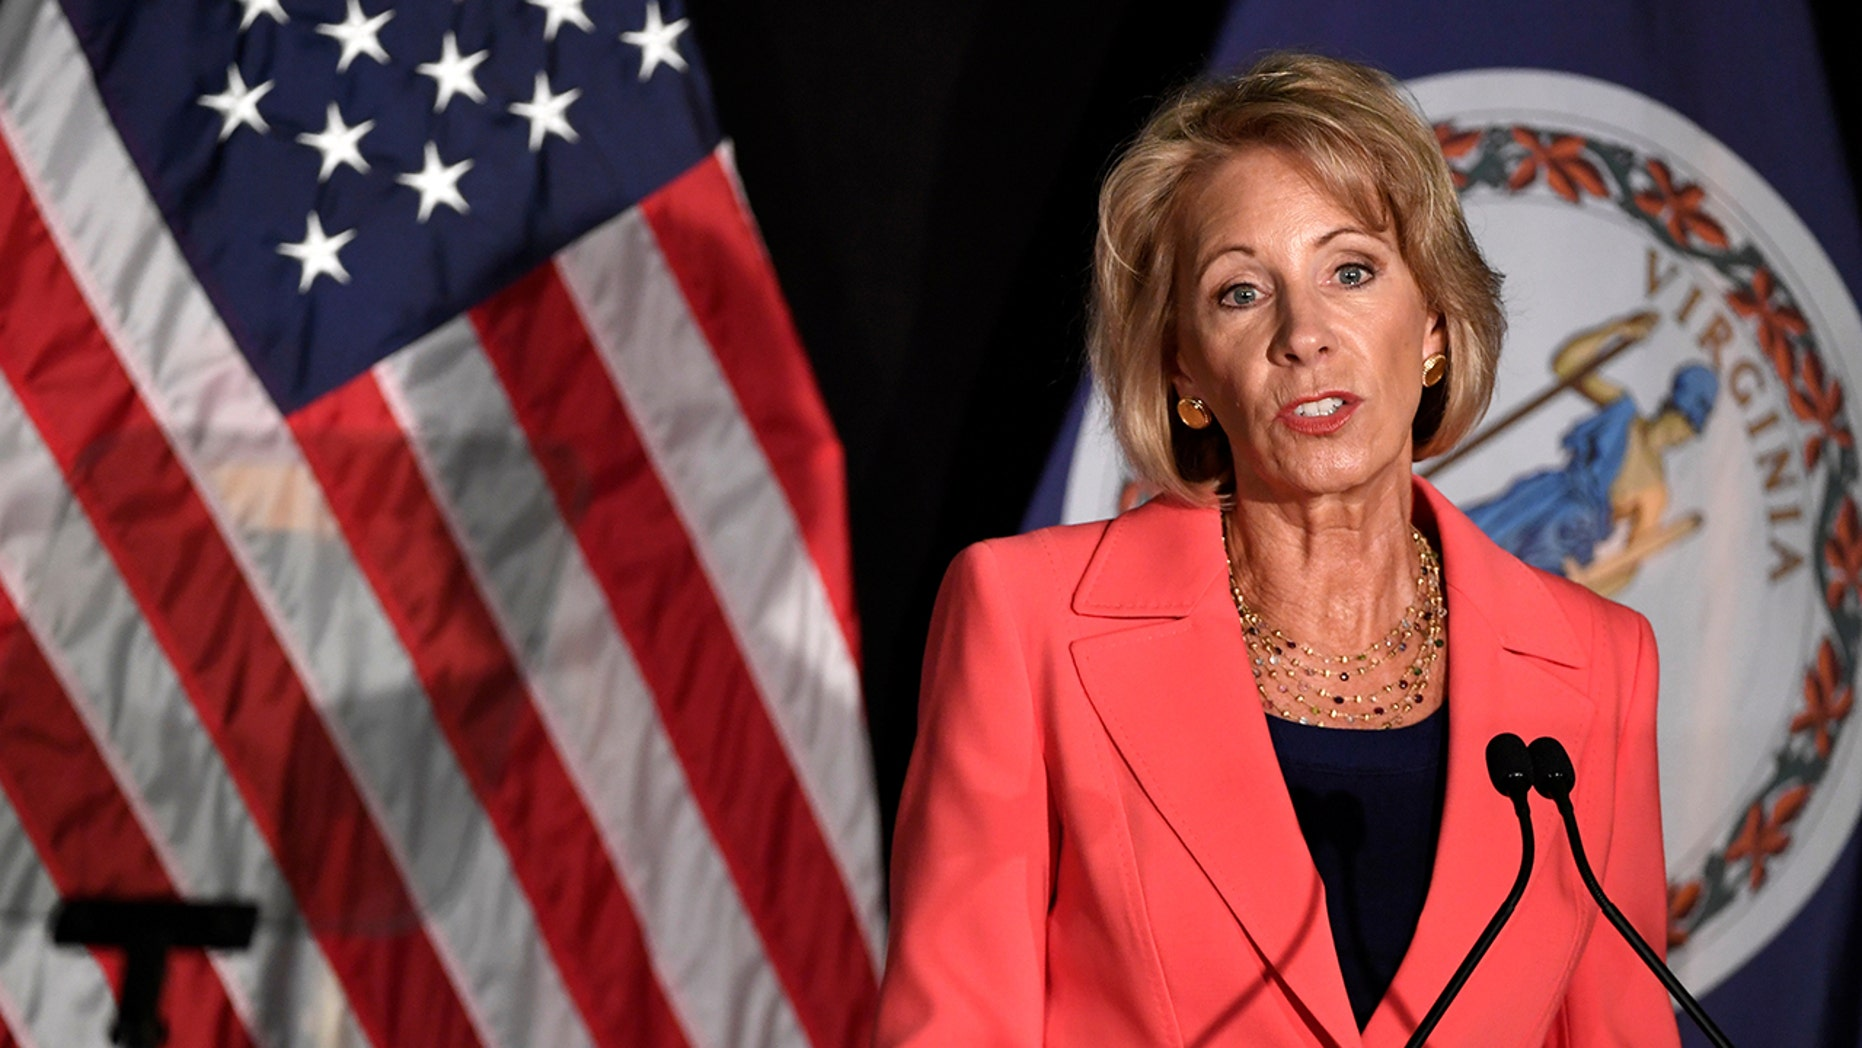 Education Department Civil Rights >> Education Department Considers Narrowing Civil Rights Work Fox News